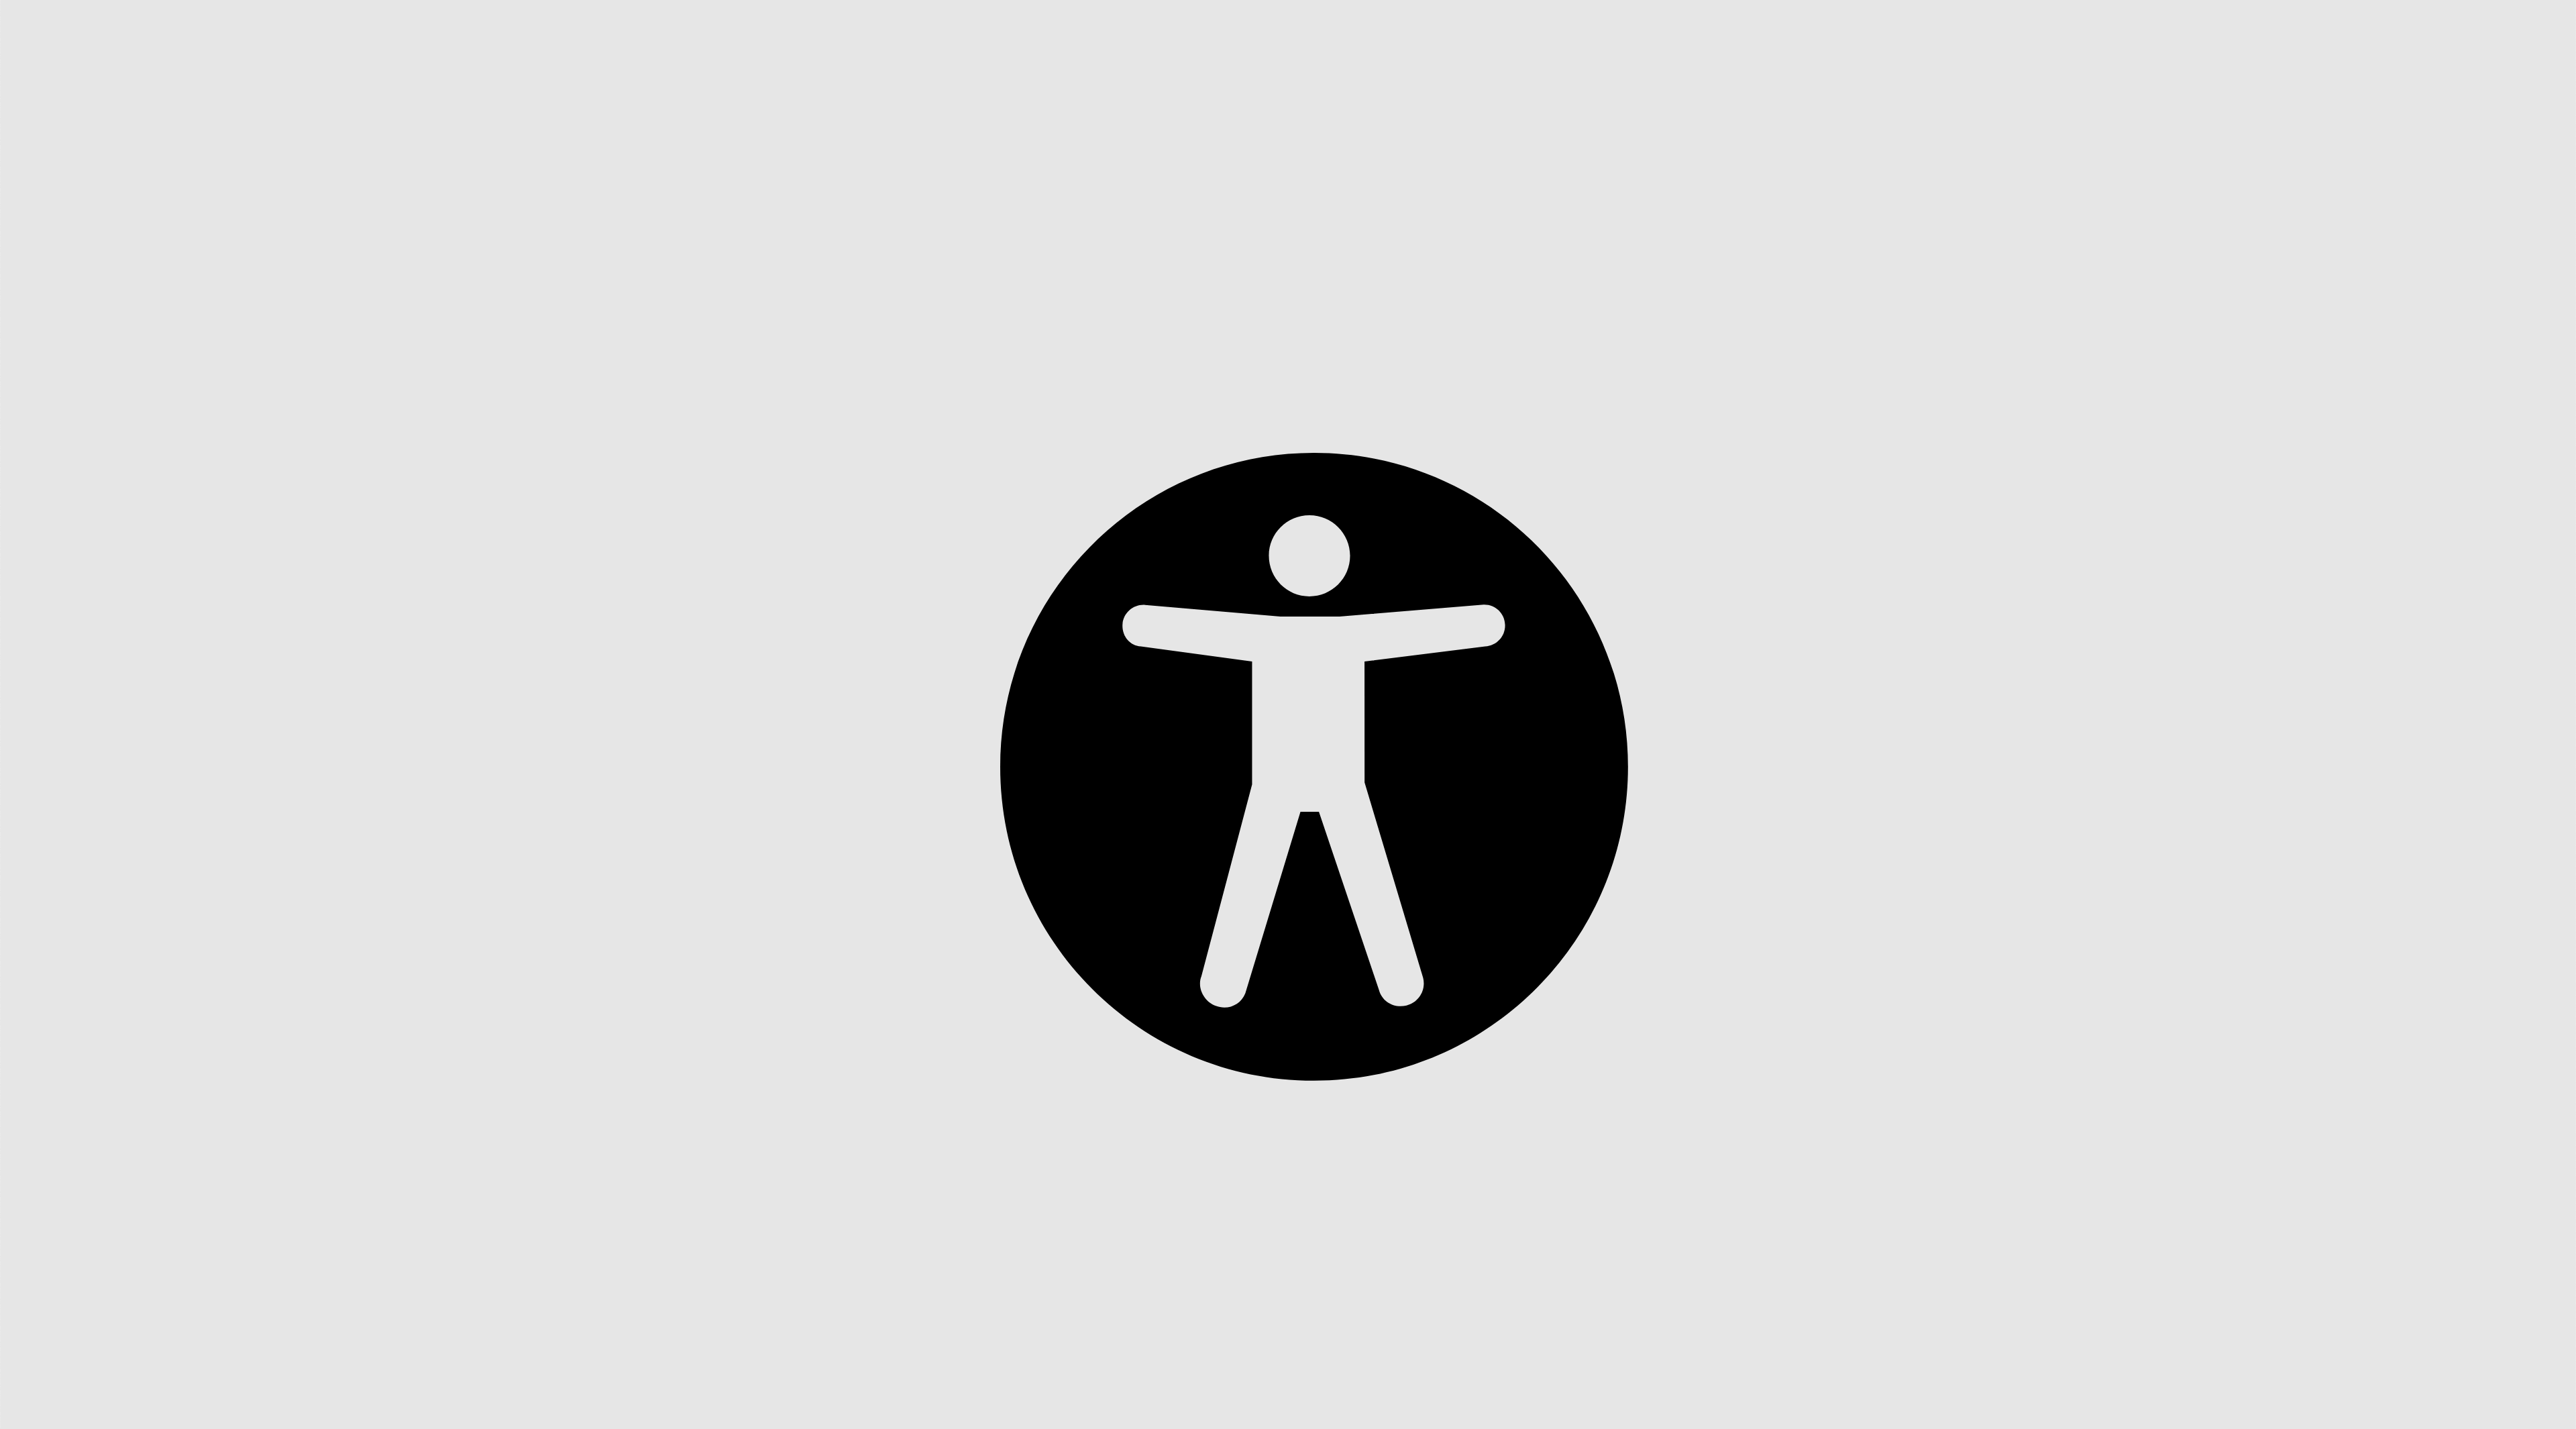 a11y icon for accessibility